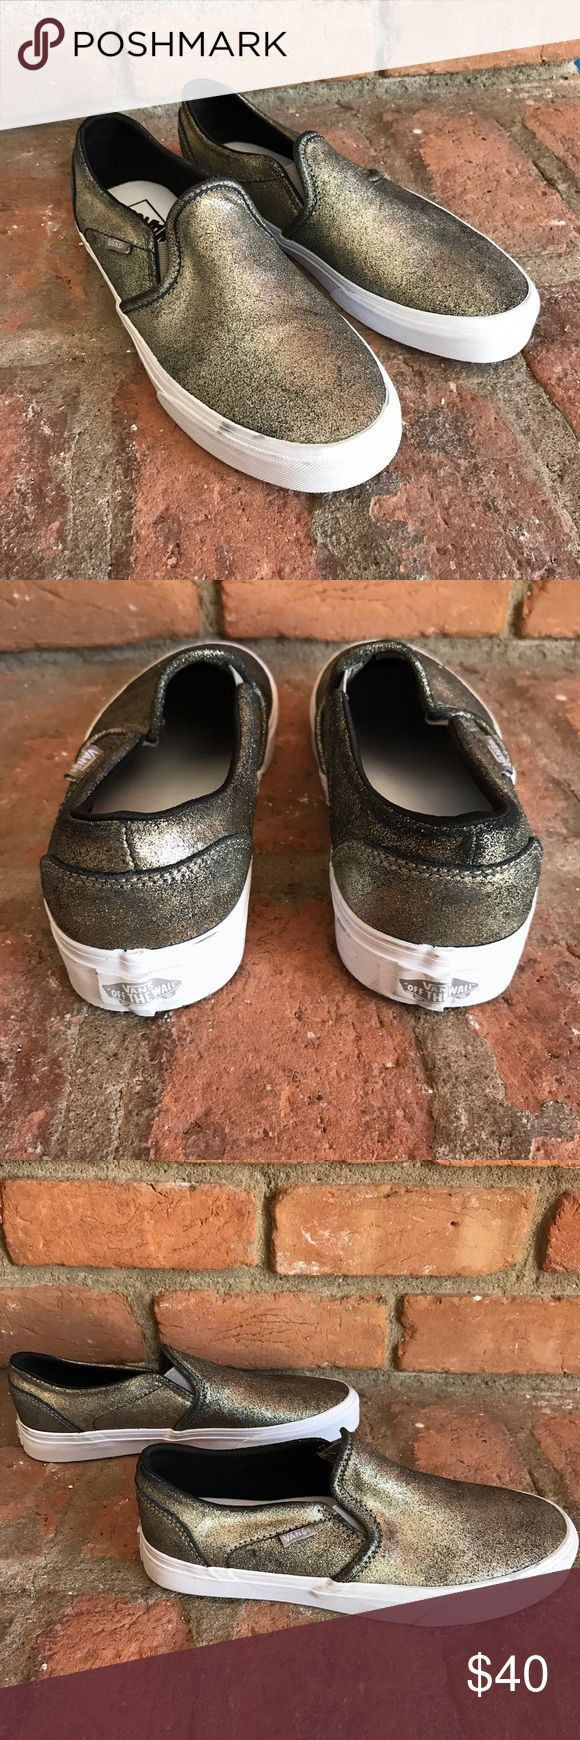 Vans classic slip on sneakers ❗️ In excellent condition super clean inside and out goldfish metallic color Vans Shoes Sneakers